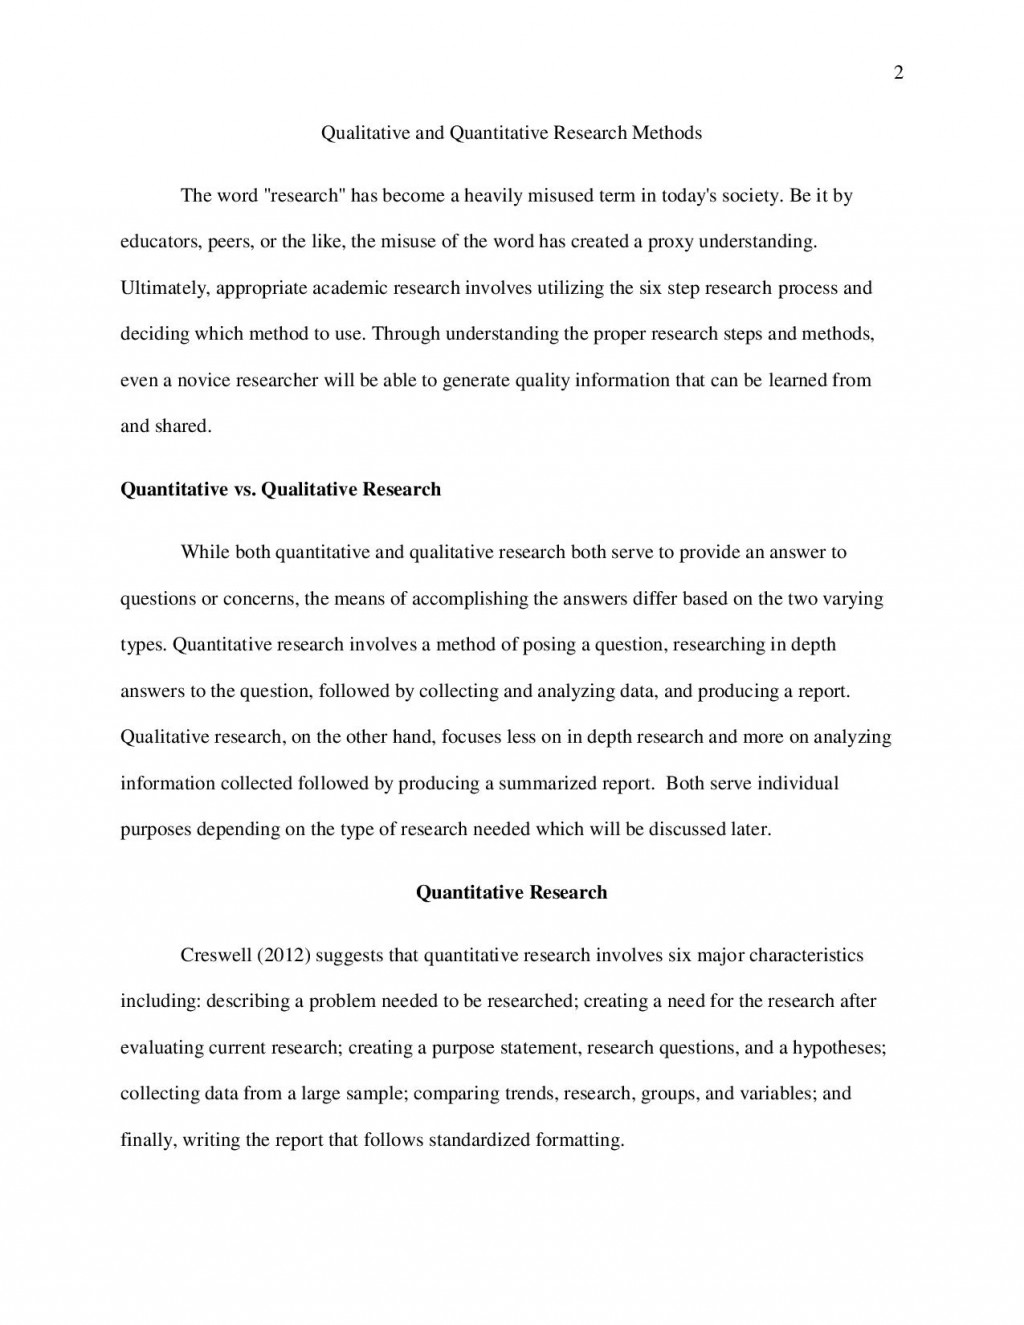 002 Example Of An Apa Qualitative Research Paper Help Singular Large